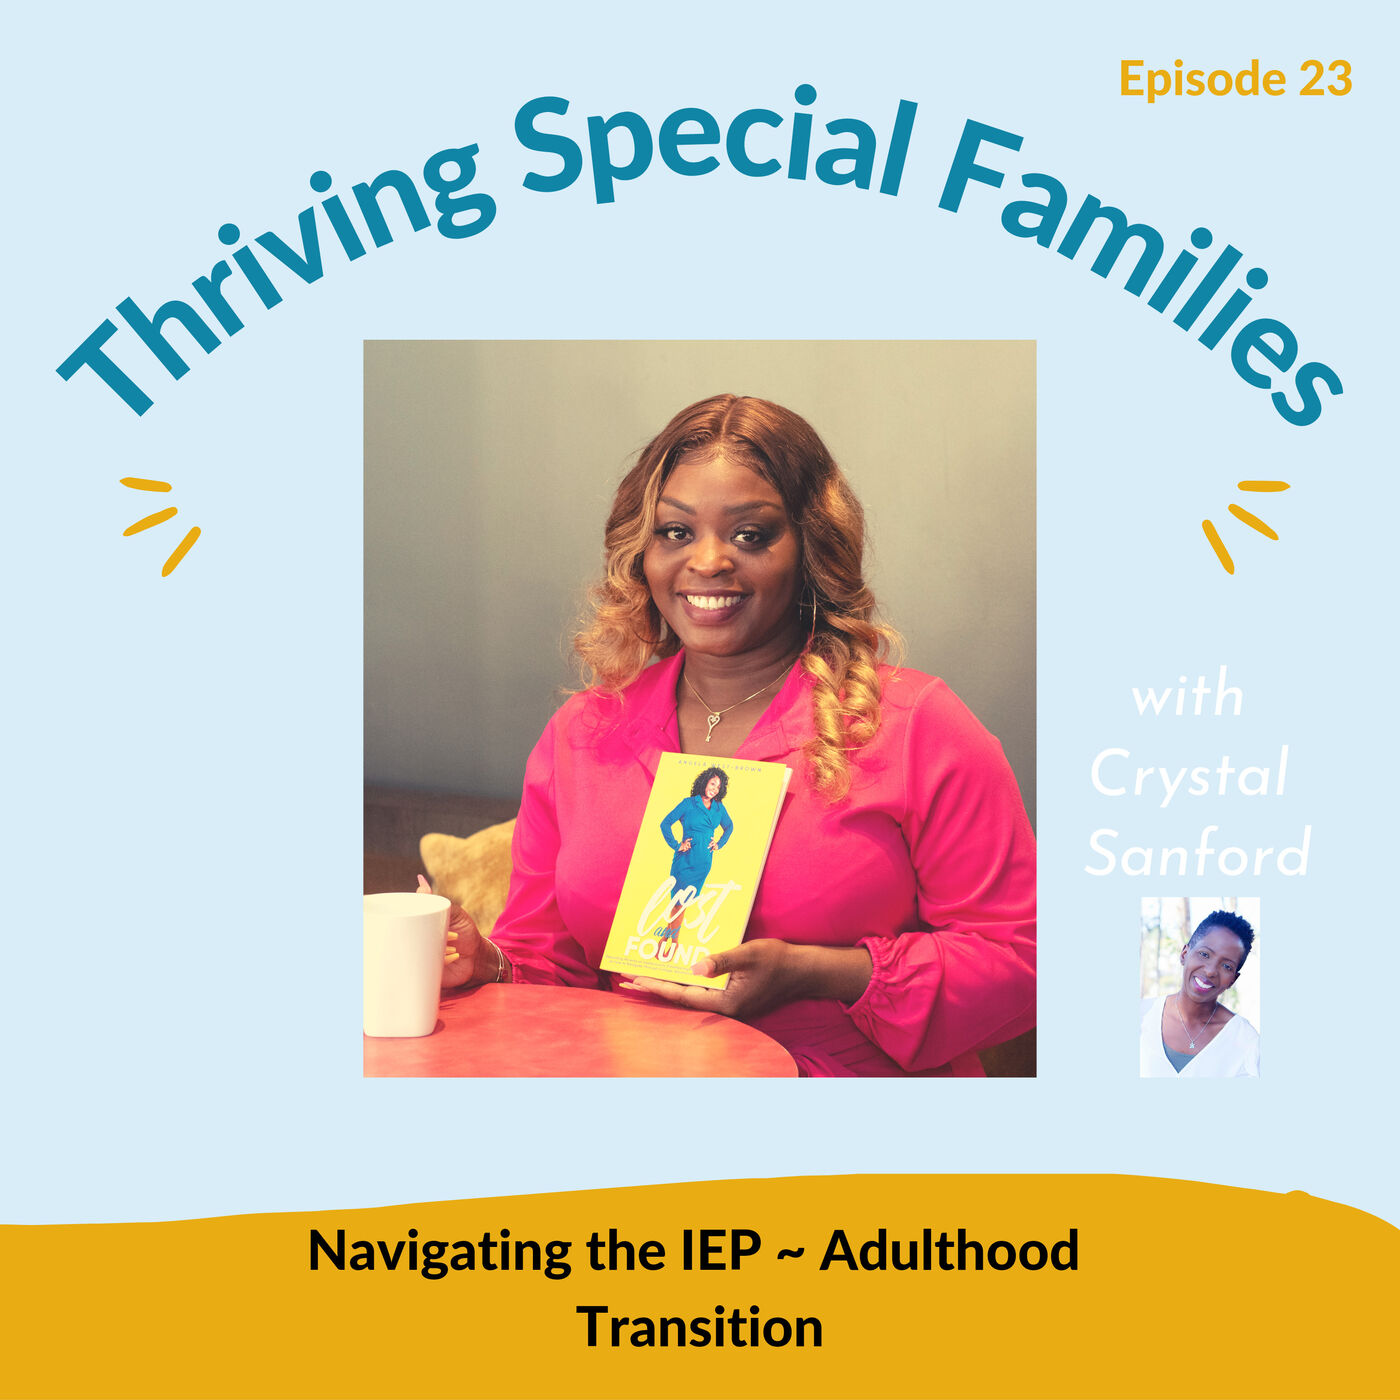 Navigating the IEP ~ Adulthood Transition